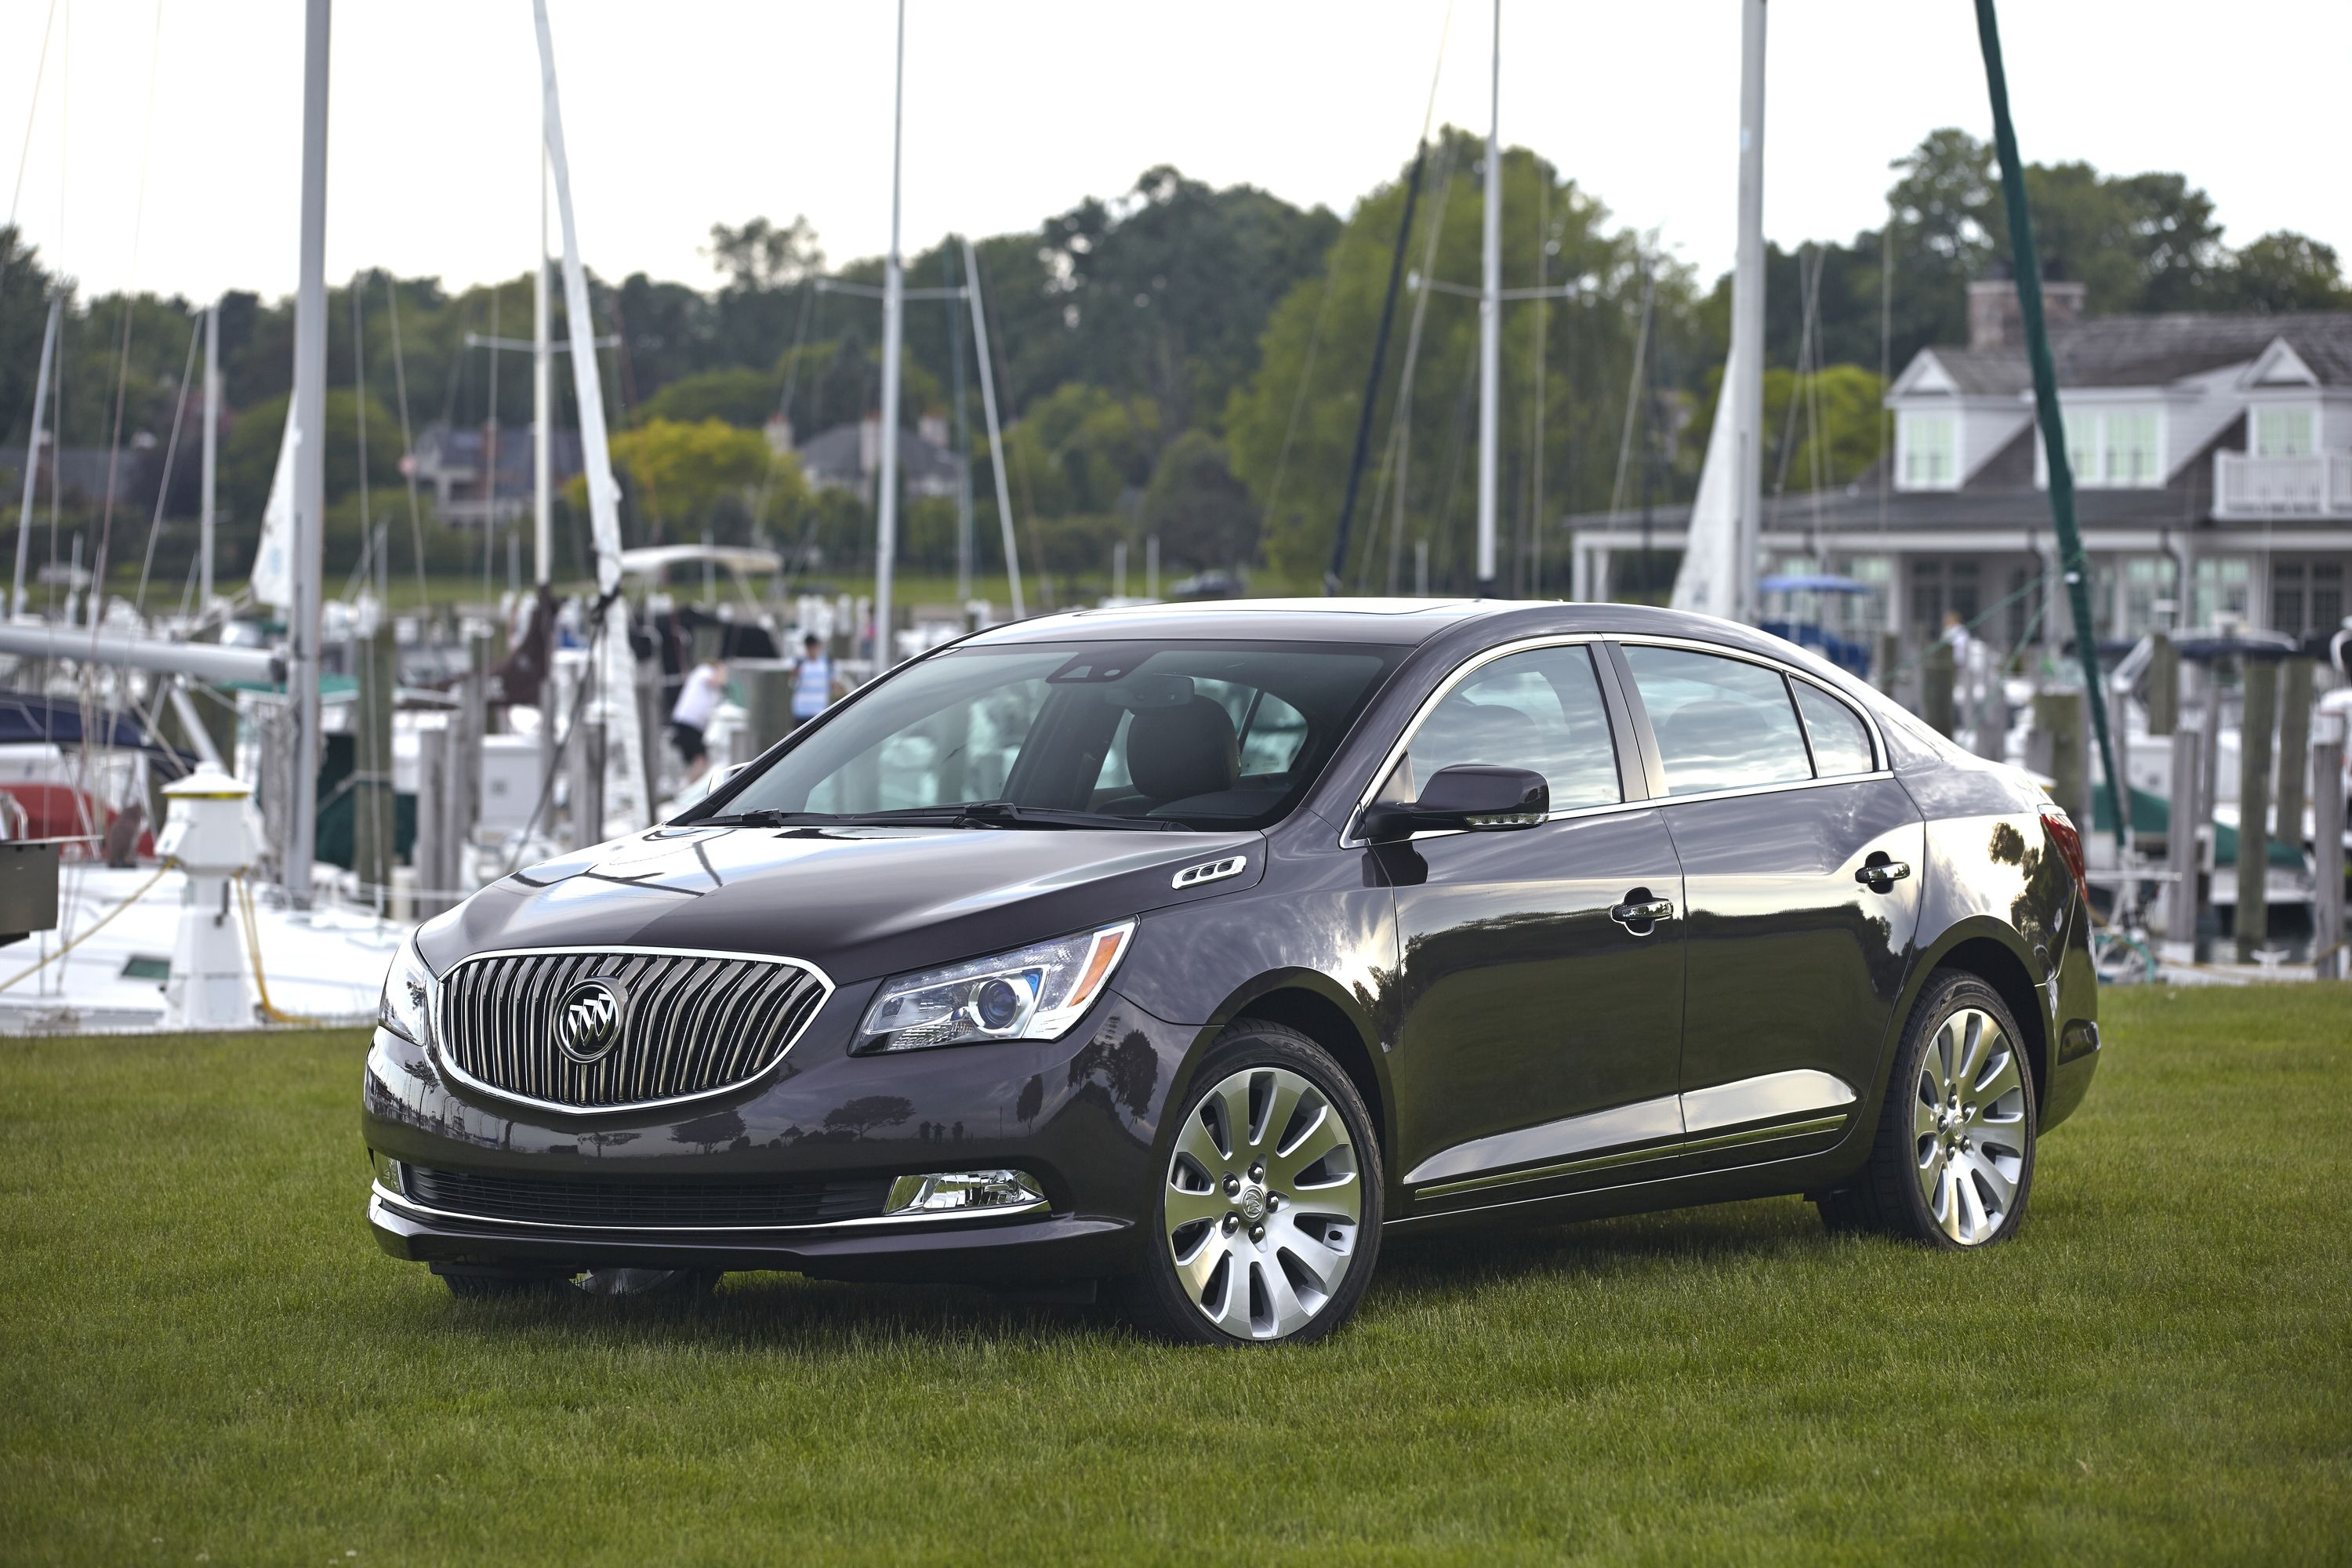 Pin By Patriot Buick Gmc On 2014 Buick Lacrosse Buick Lacrosse Buick Lacrosse